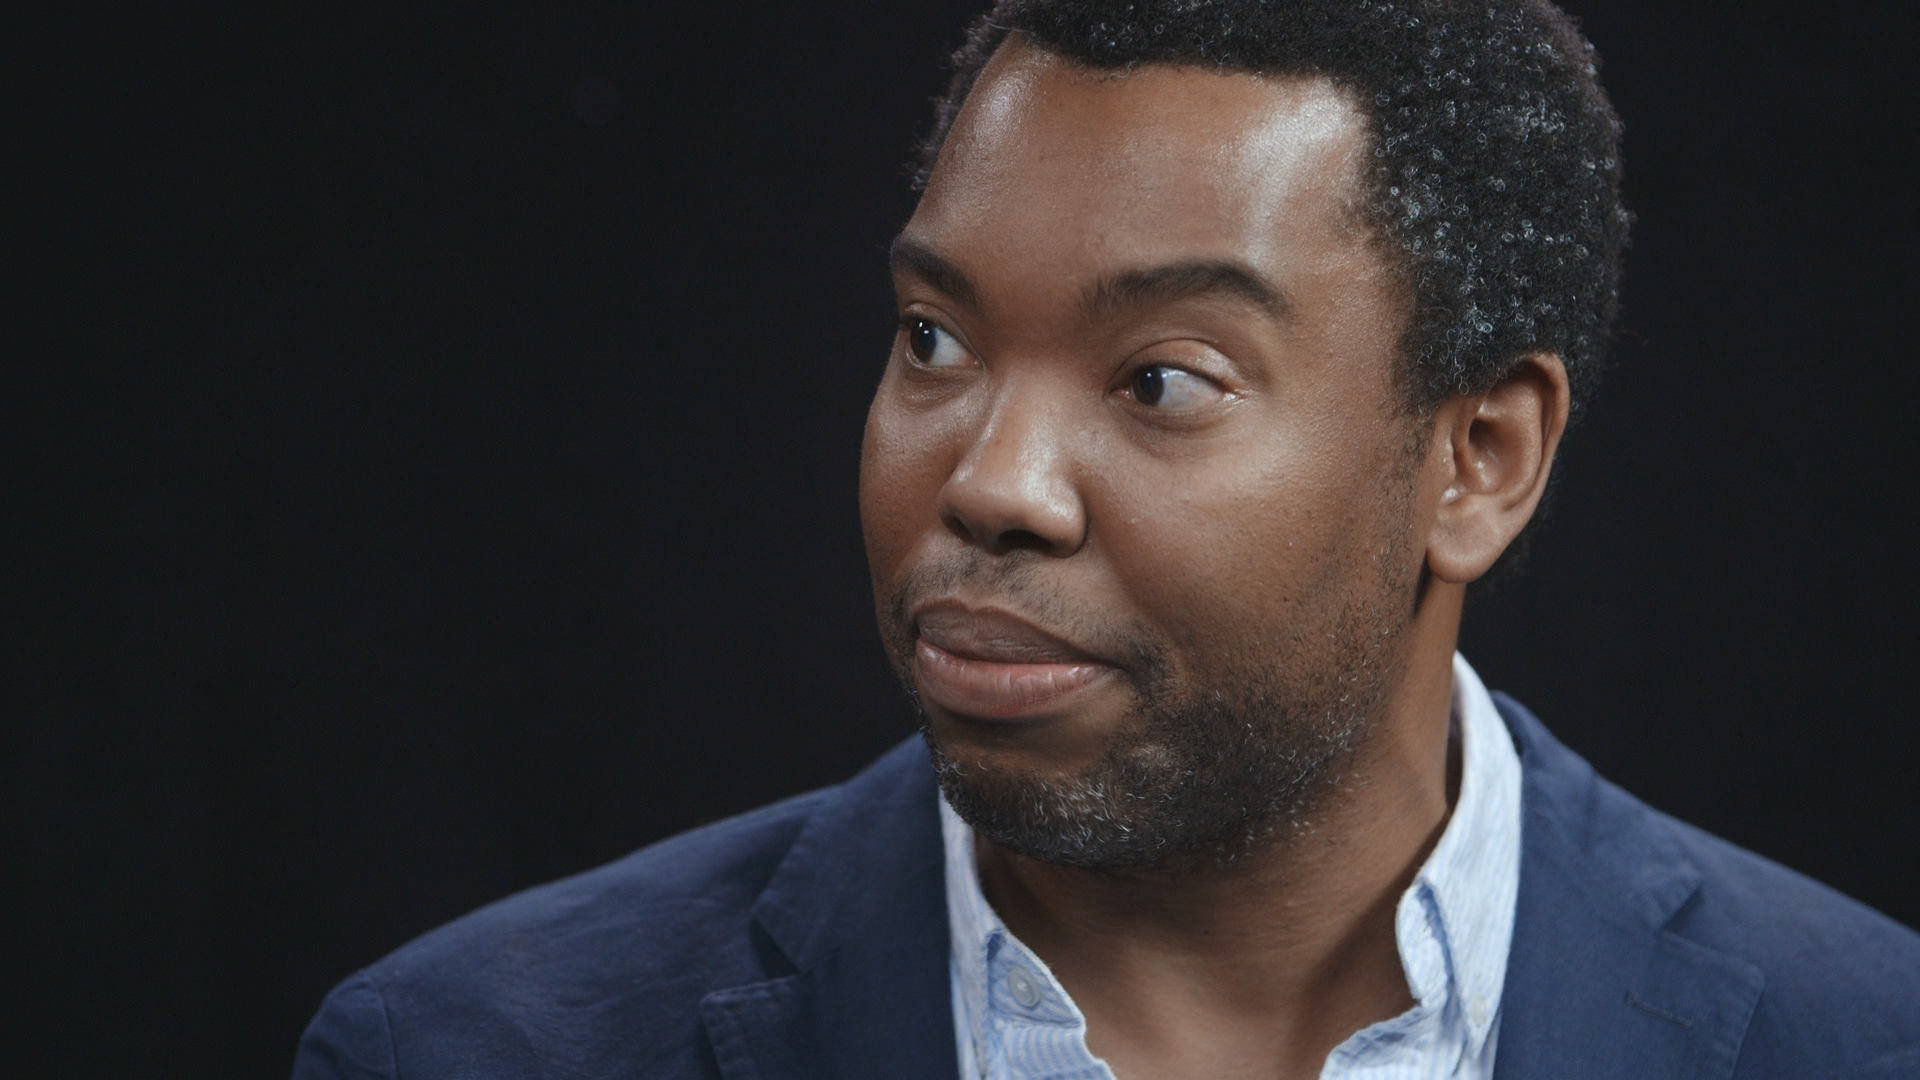 """Ta-Nehisi Coates: """"For African Americans, unfreedom is the historical norm"""" - Vox"""